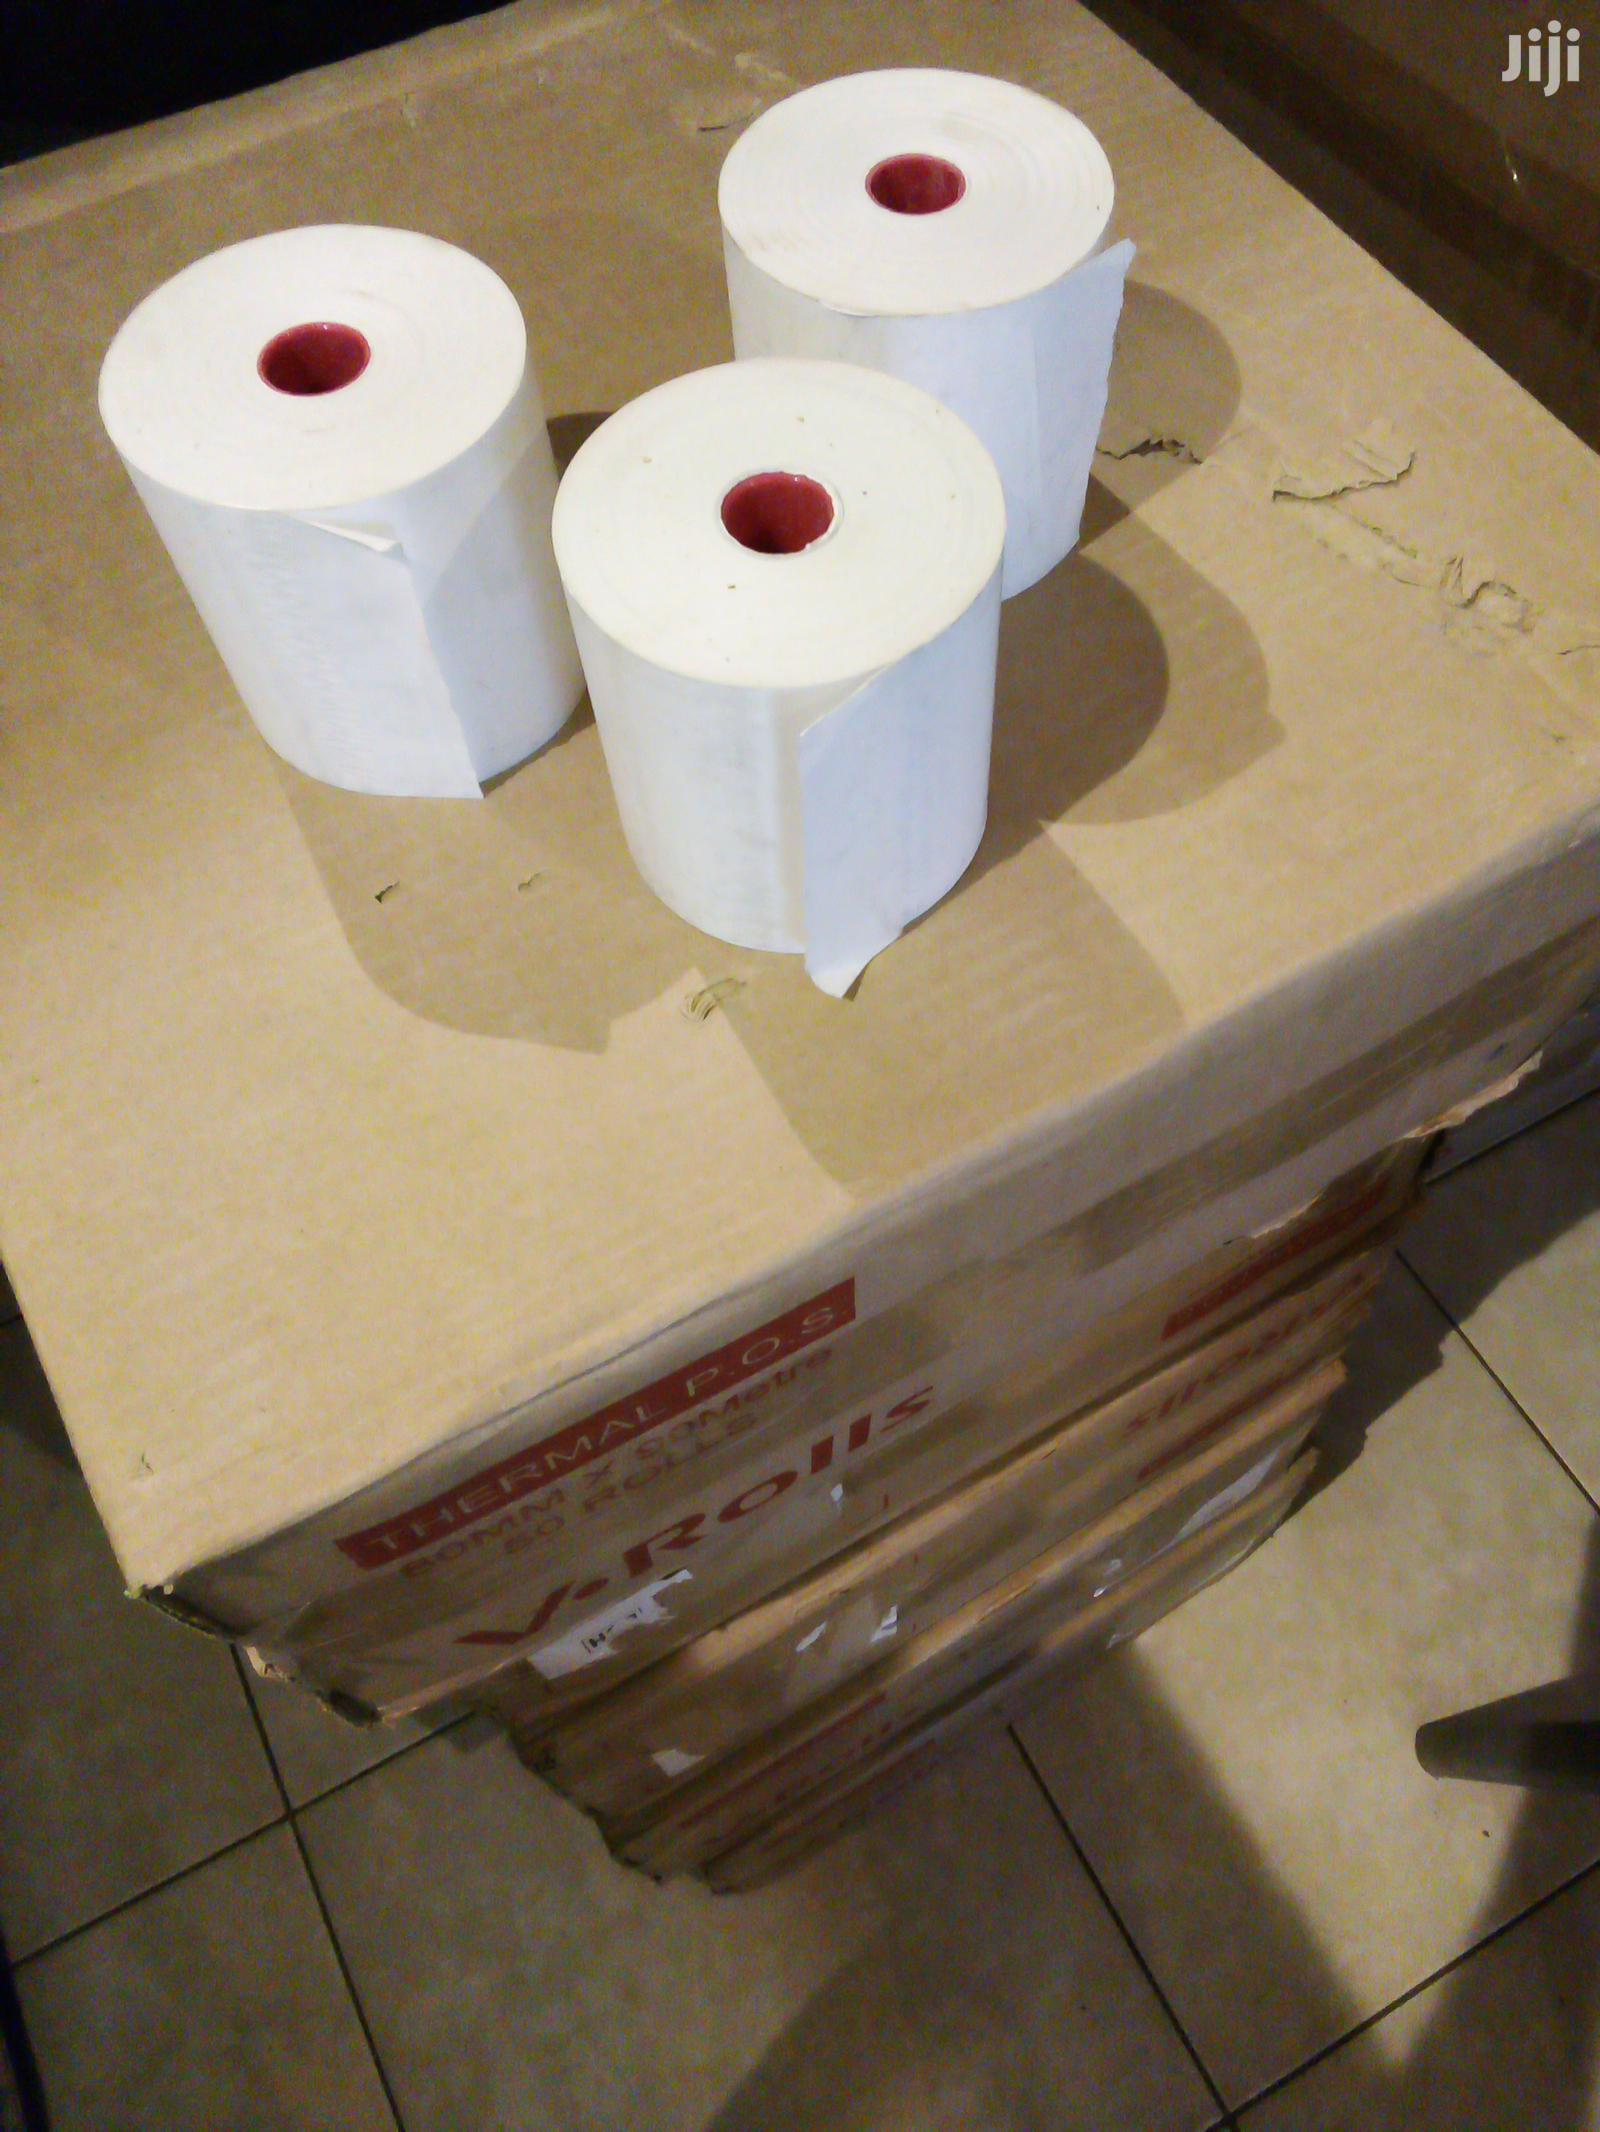 80MM×90metres Thermal Rolls (50 Rolls/Pcs) | Printing Equipment for sale in Kampala, Central Region, Uganda